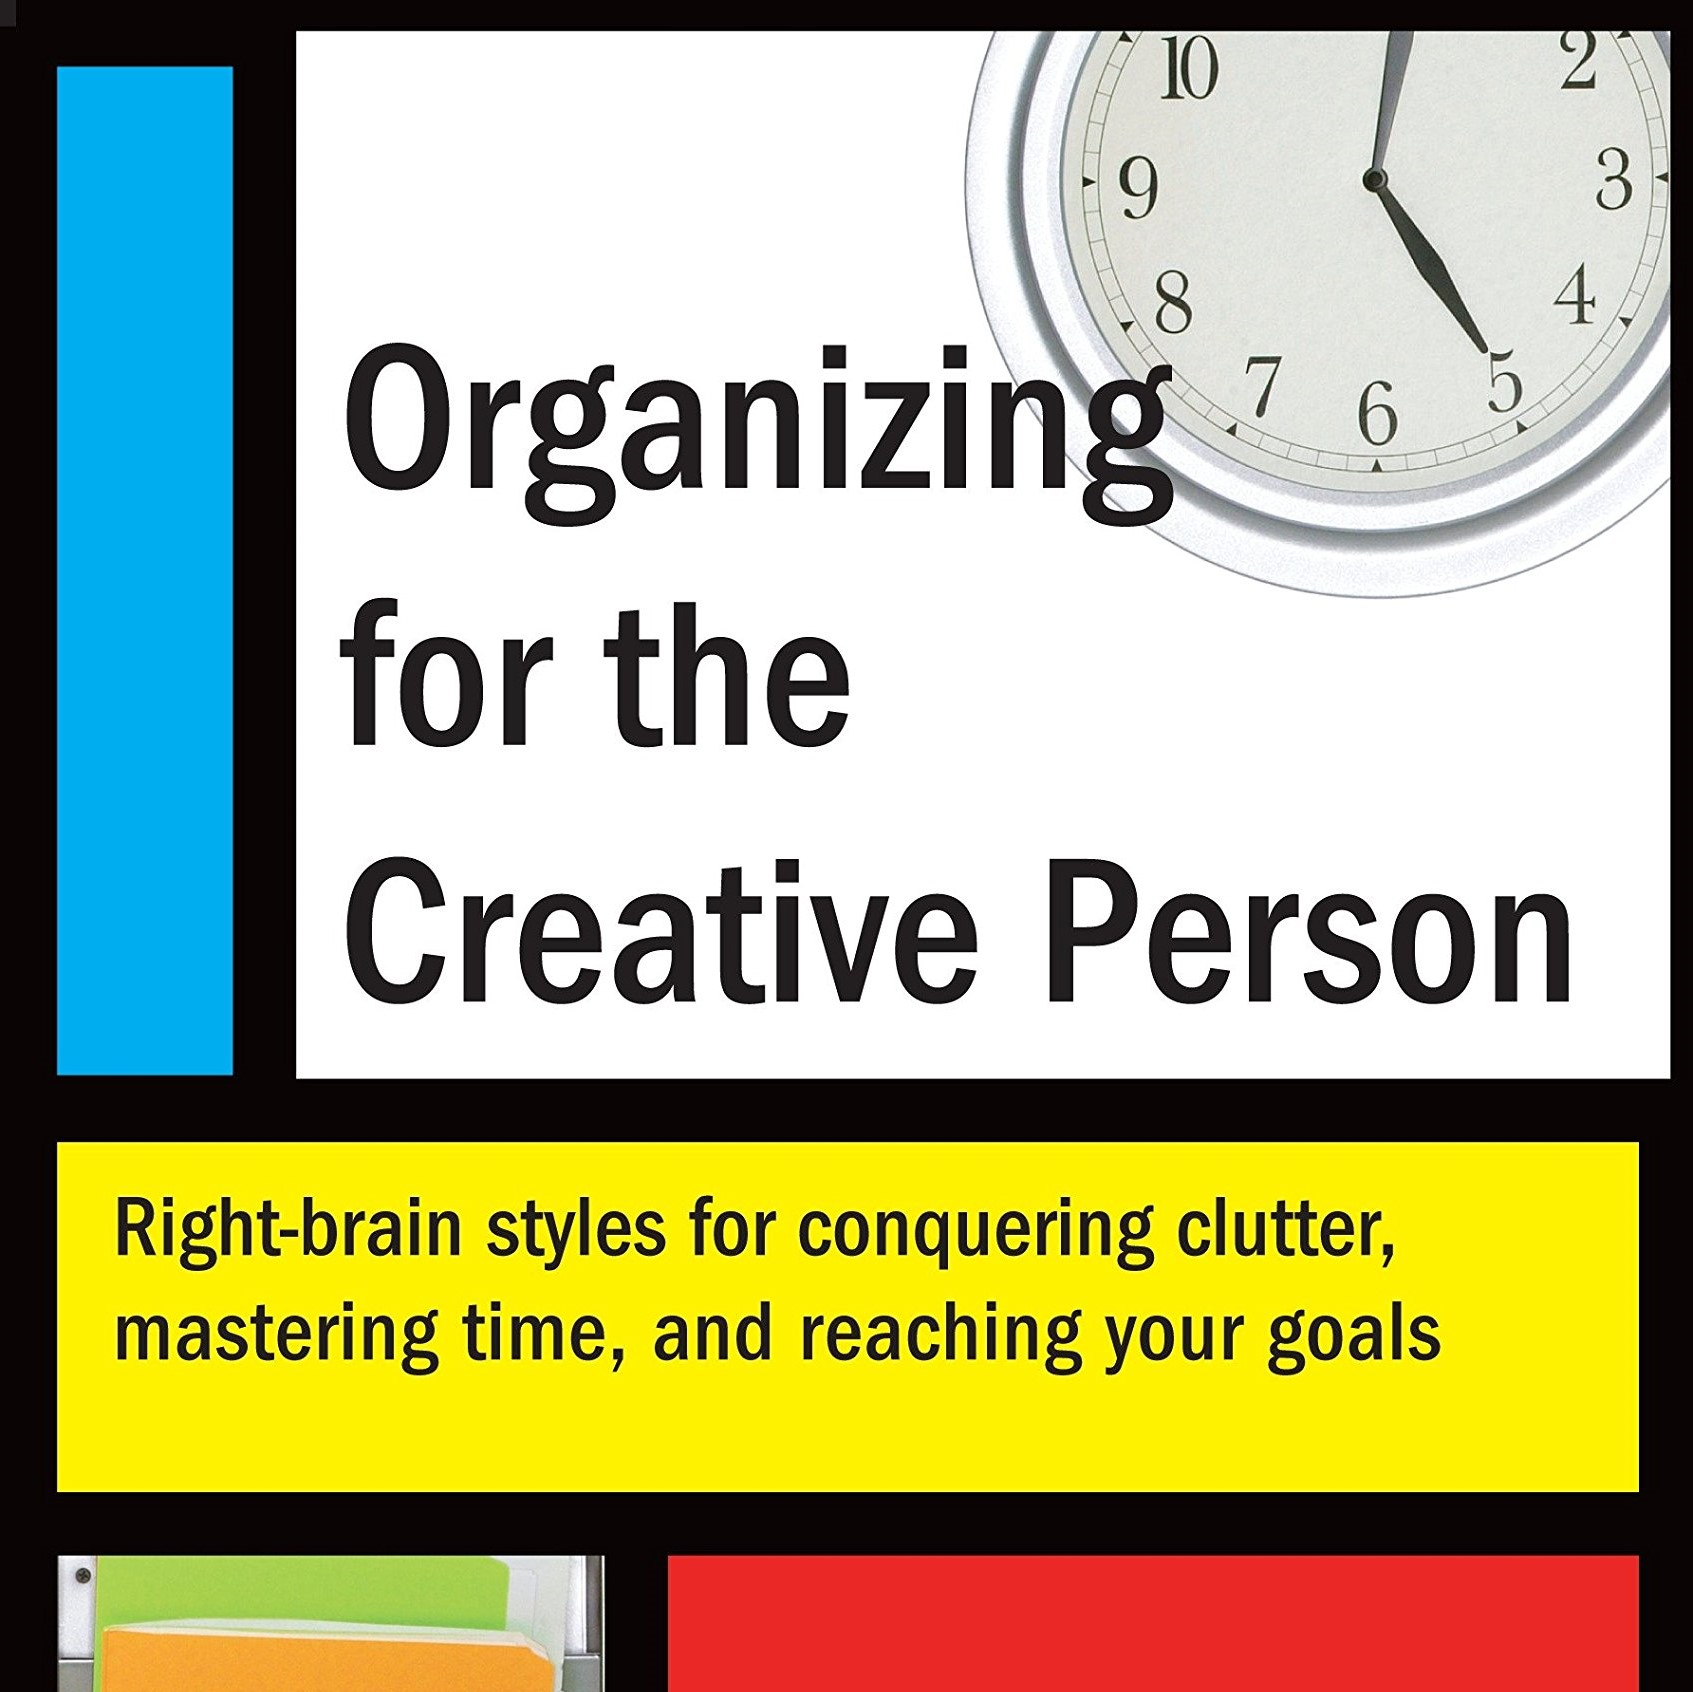 Organizing for the Creative Person by Lehmkuhl Lam